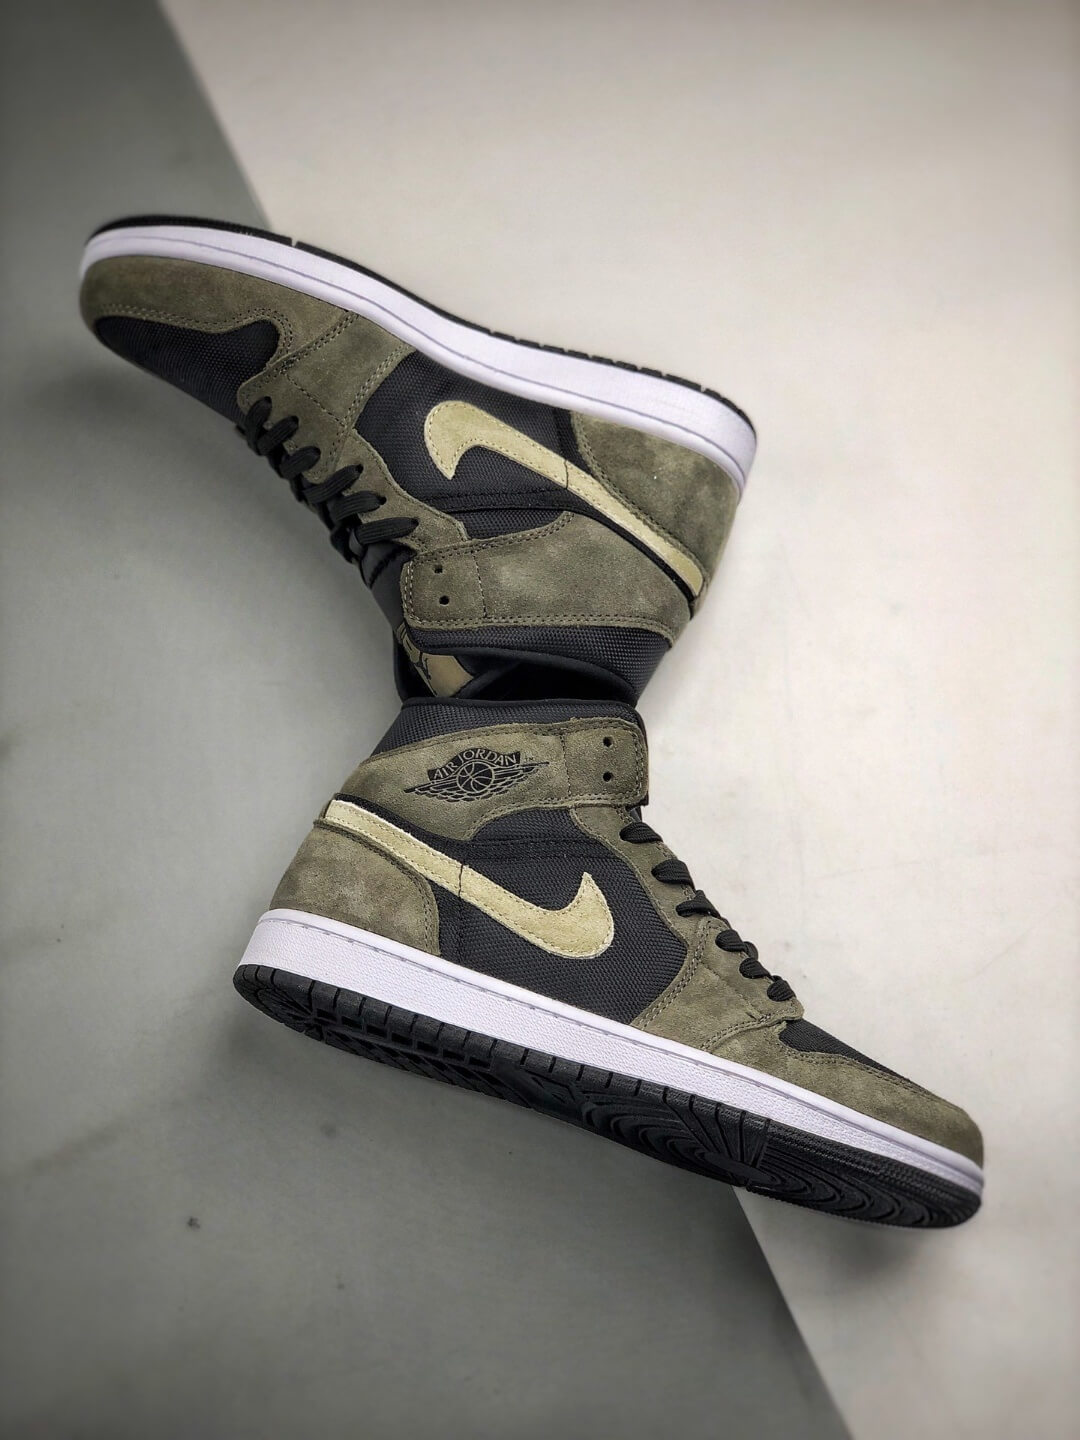 The Nike Wmns Air Jordan 1 Mid Olive Black Mesh Underlay Olive Tan Suede Overlay Repshoes 08